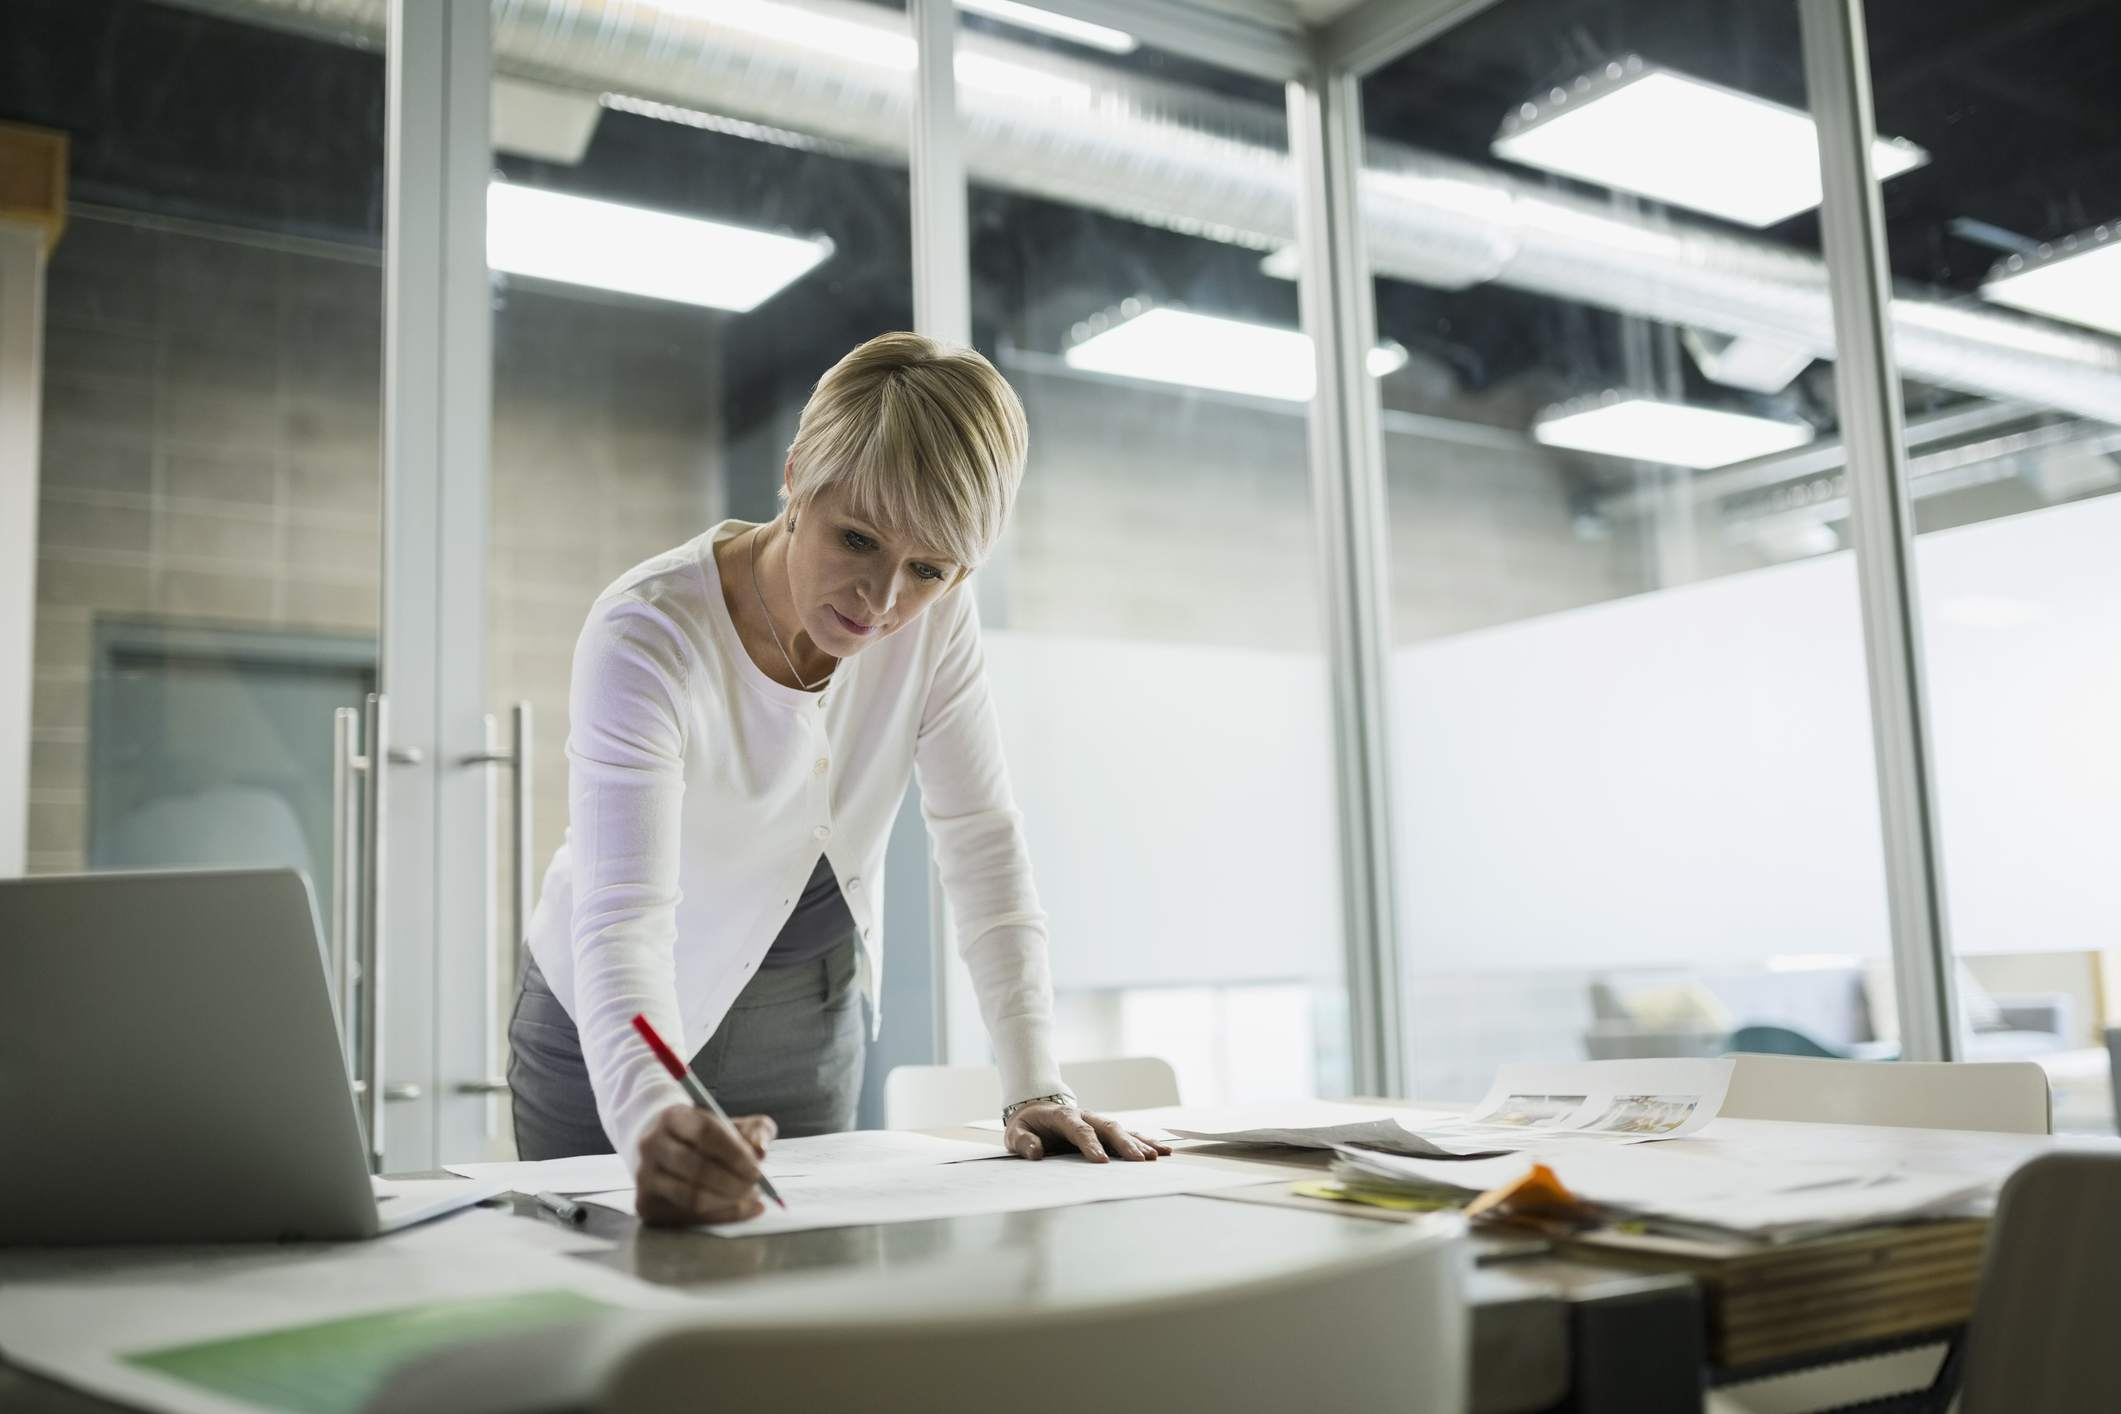 Woman standing over a desk, editing in office